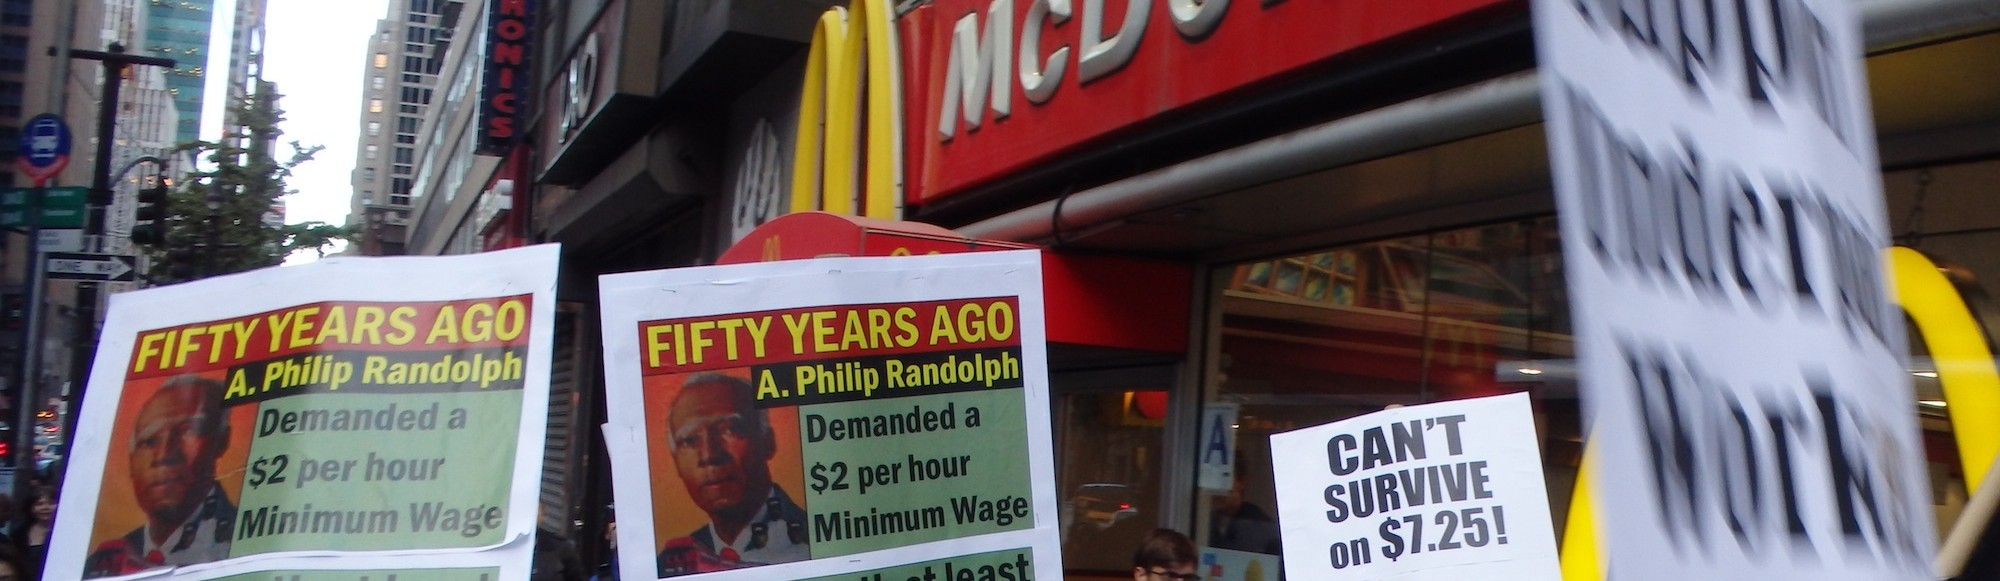 "an analysis of the truths in eric schlossers article fast food nation News analysis: khurana's welcome email to students is normally short and  sweet  director richard linklater's much-anticipated feature film ""fast food  nation"" is  by the same name, written by eric schlosser, the film's co-author "" fast food nation"" imbeds facts about the american fast food industry in."